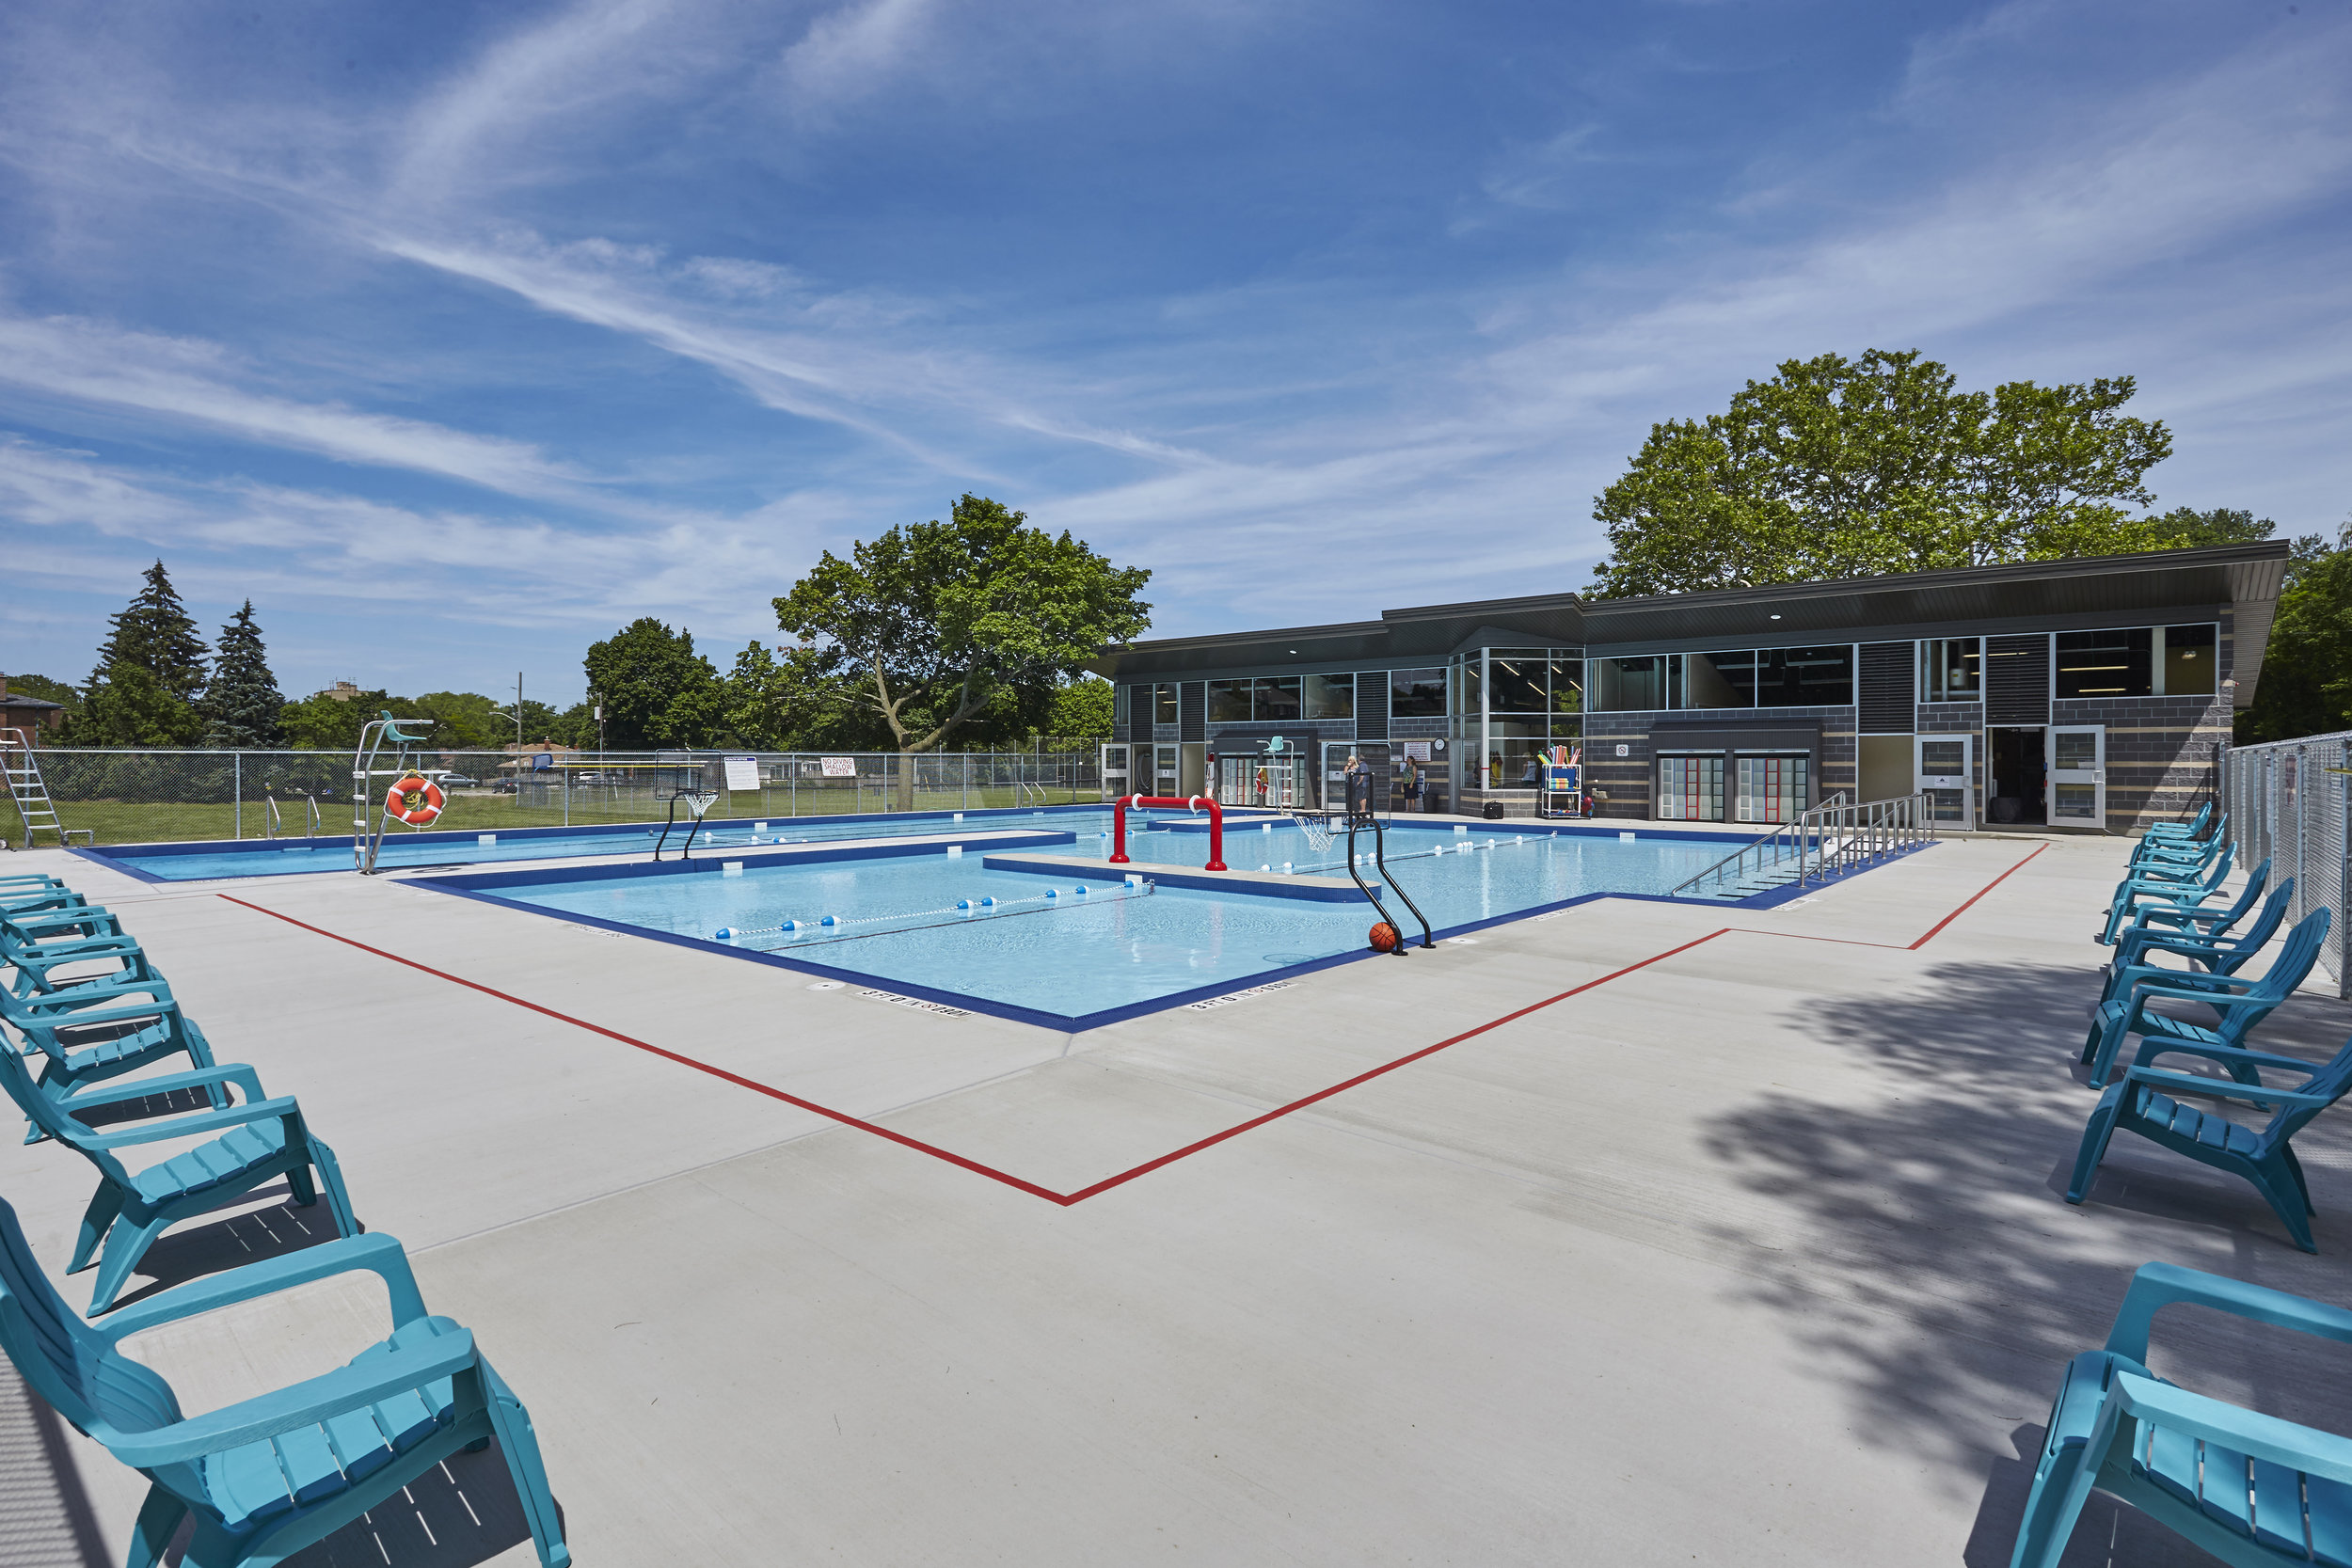 Green Acres Pool  Completed  Hamilton, Ontario  McCallum Sather Architects Inc.